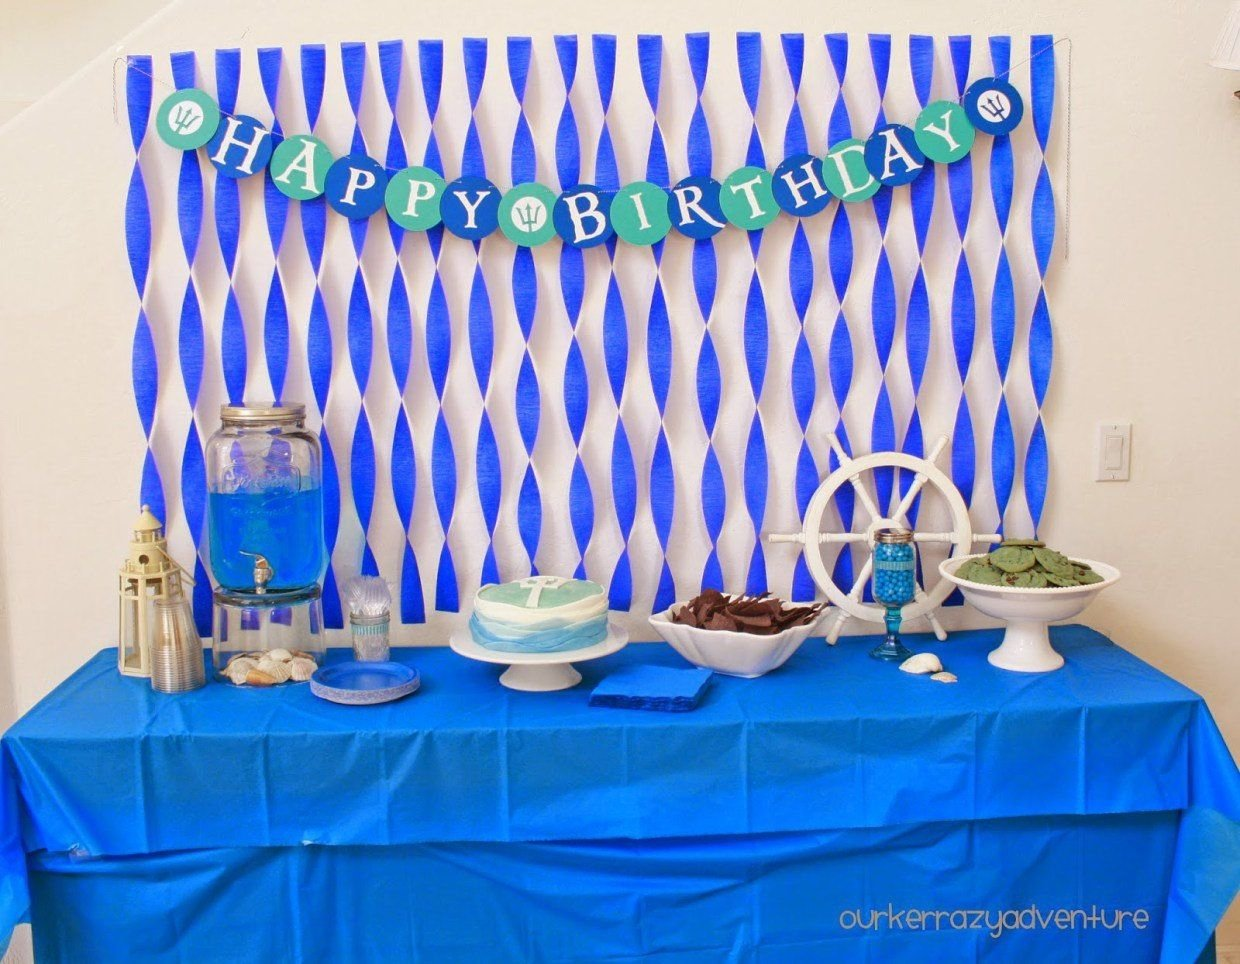 want to throw the best percy jackson themed birthday party and need